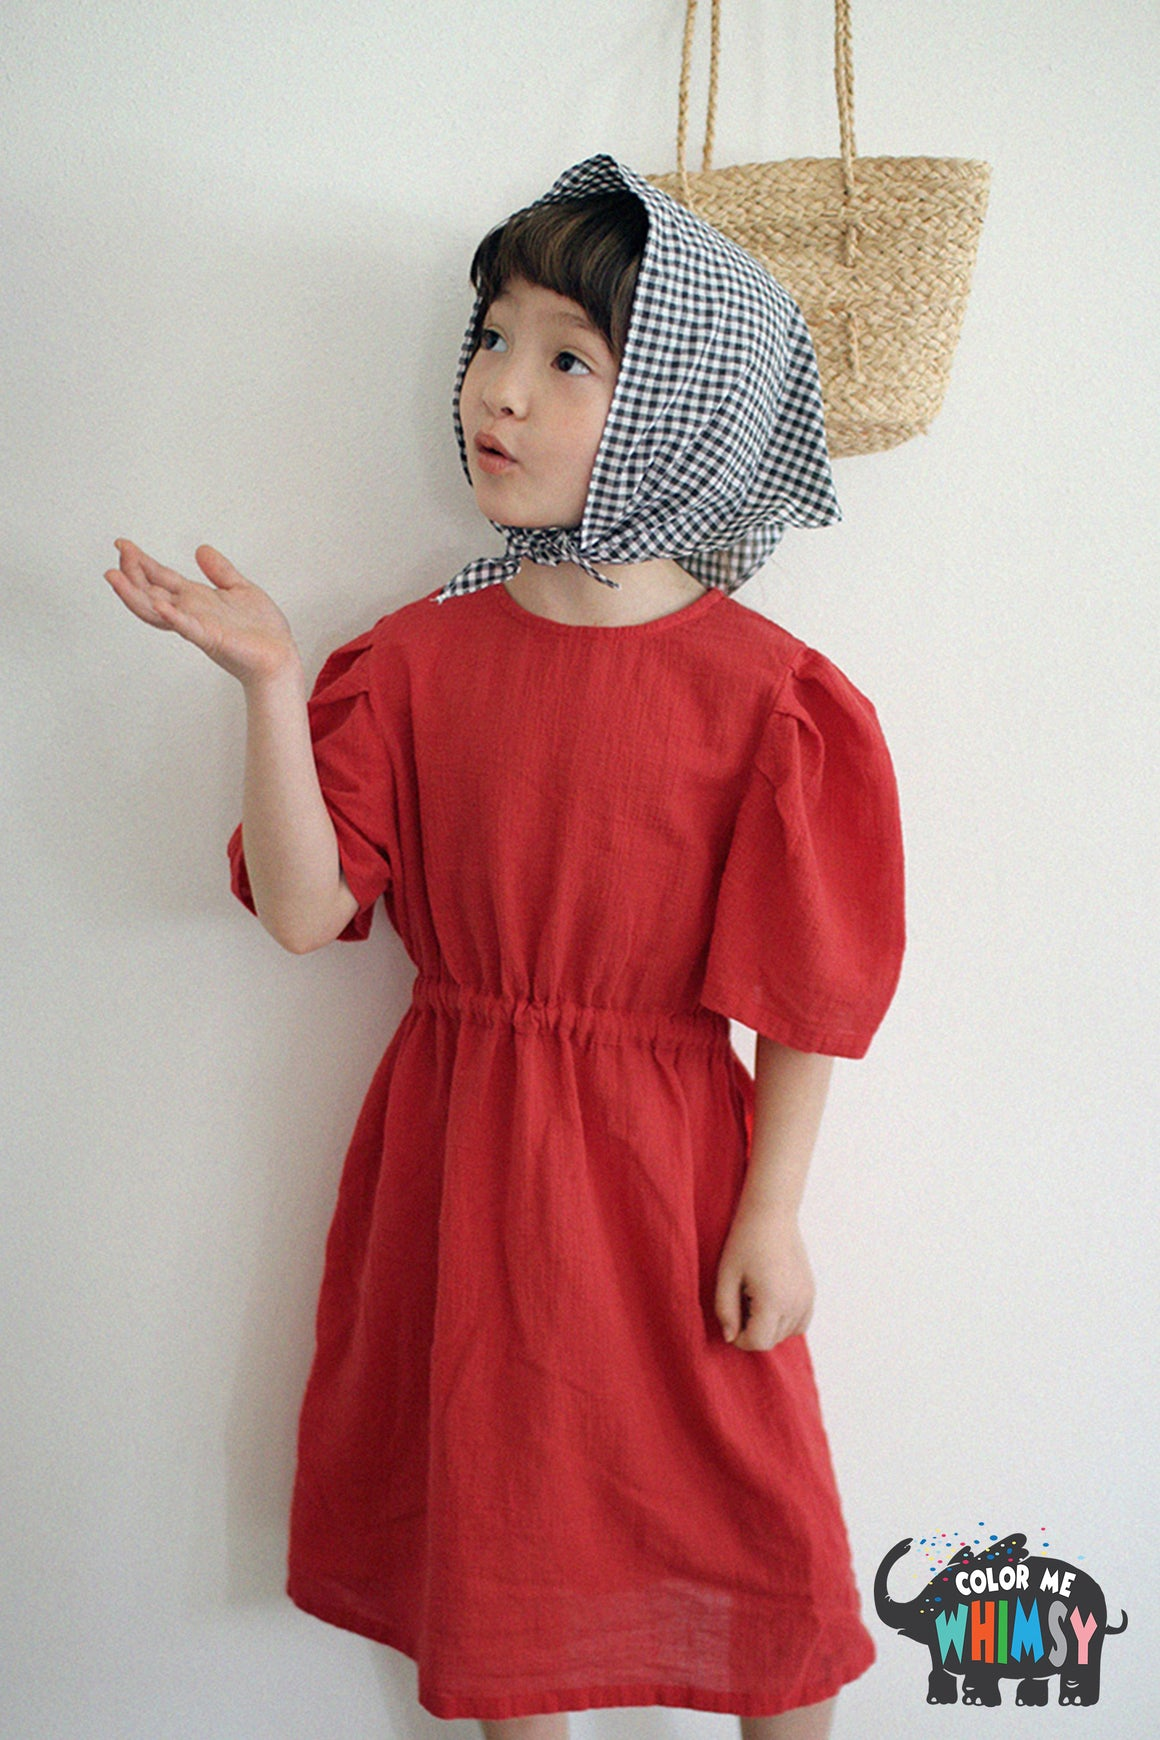 SCON Vanessa Dress at Color Me WHIMSY Hip Kid's Fashion Ethically Made in South Korea.jpg